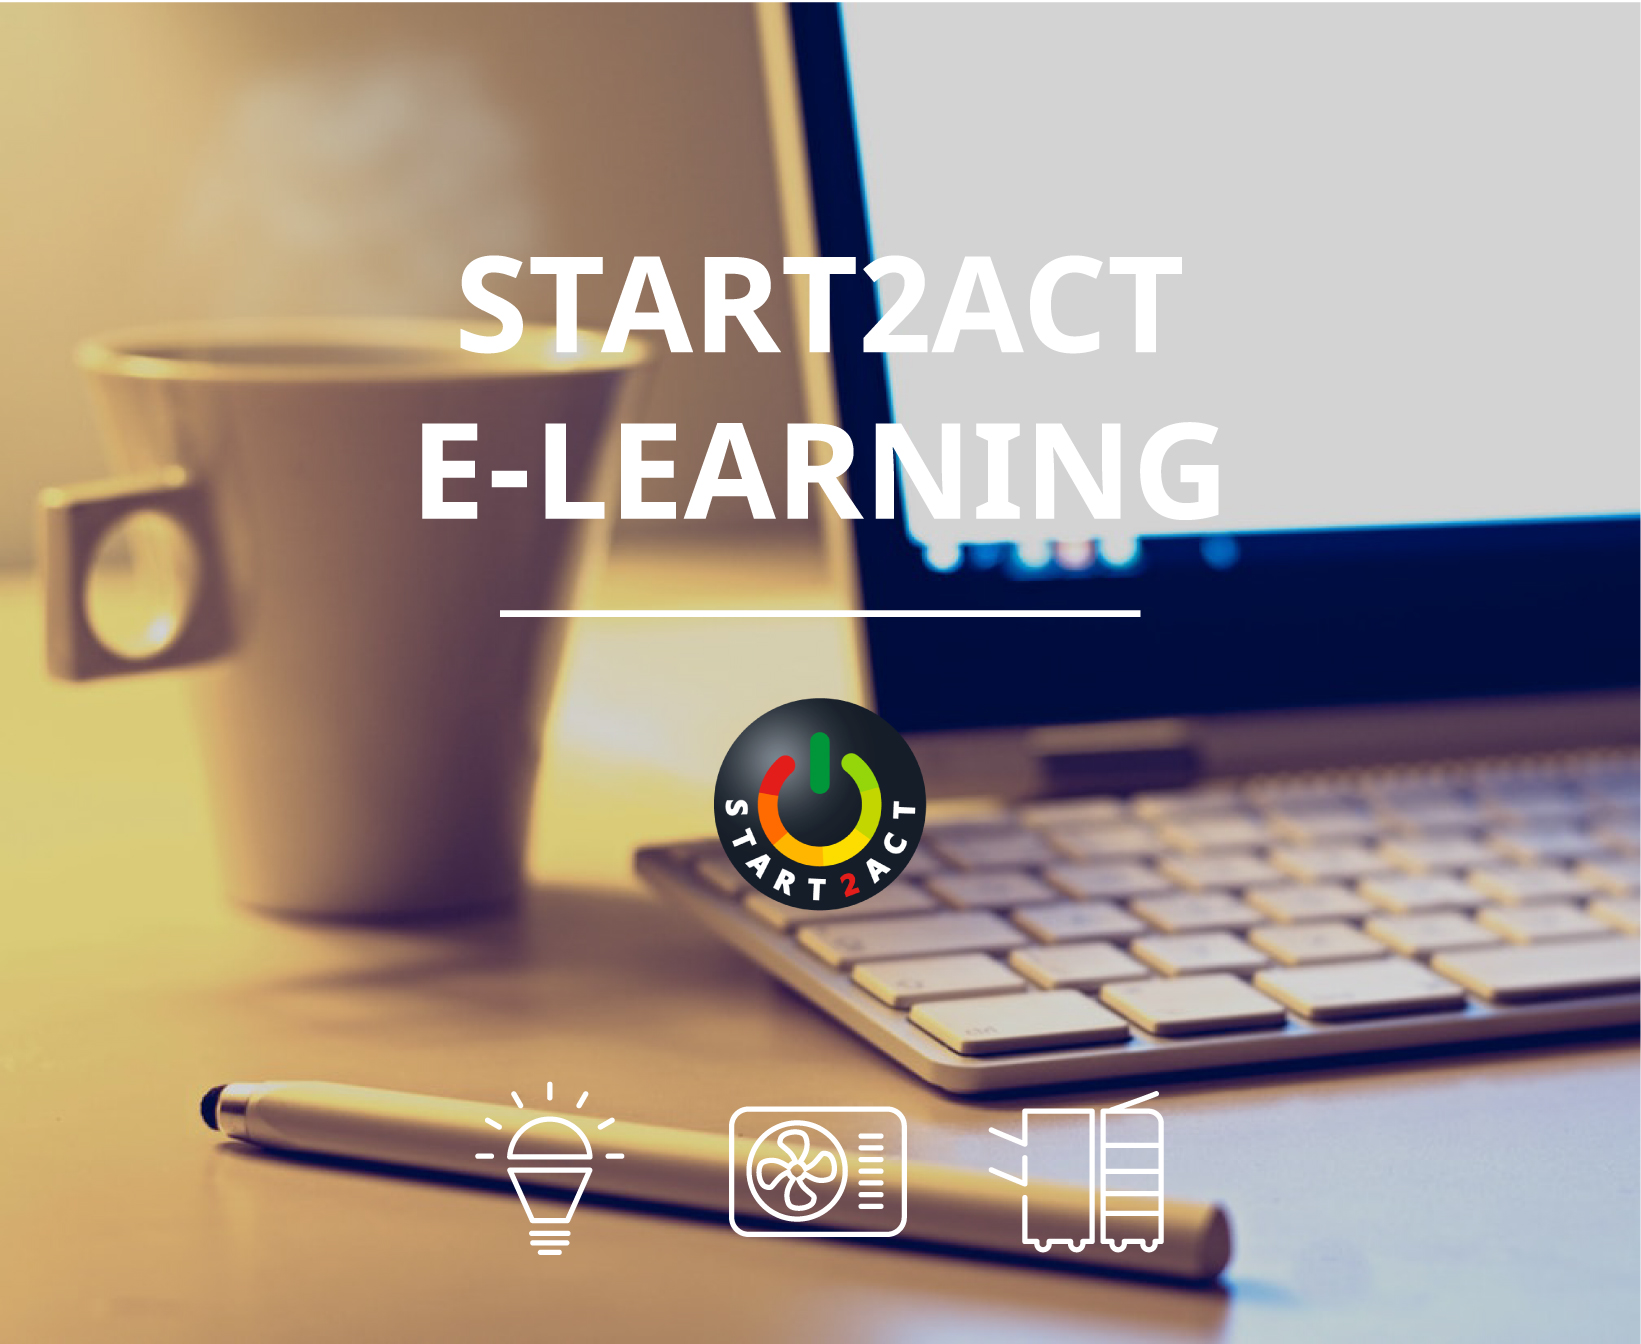 The first full START2ACT E-learning Module is launched!